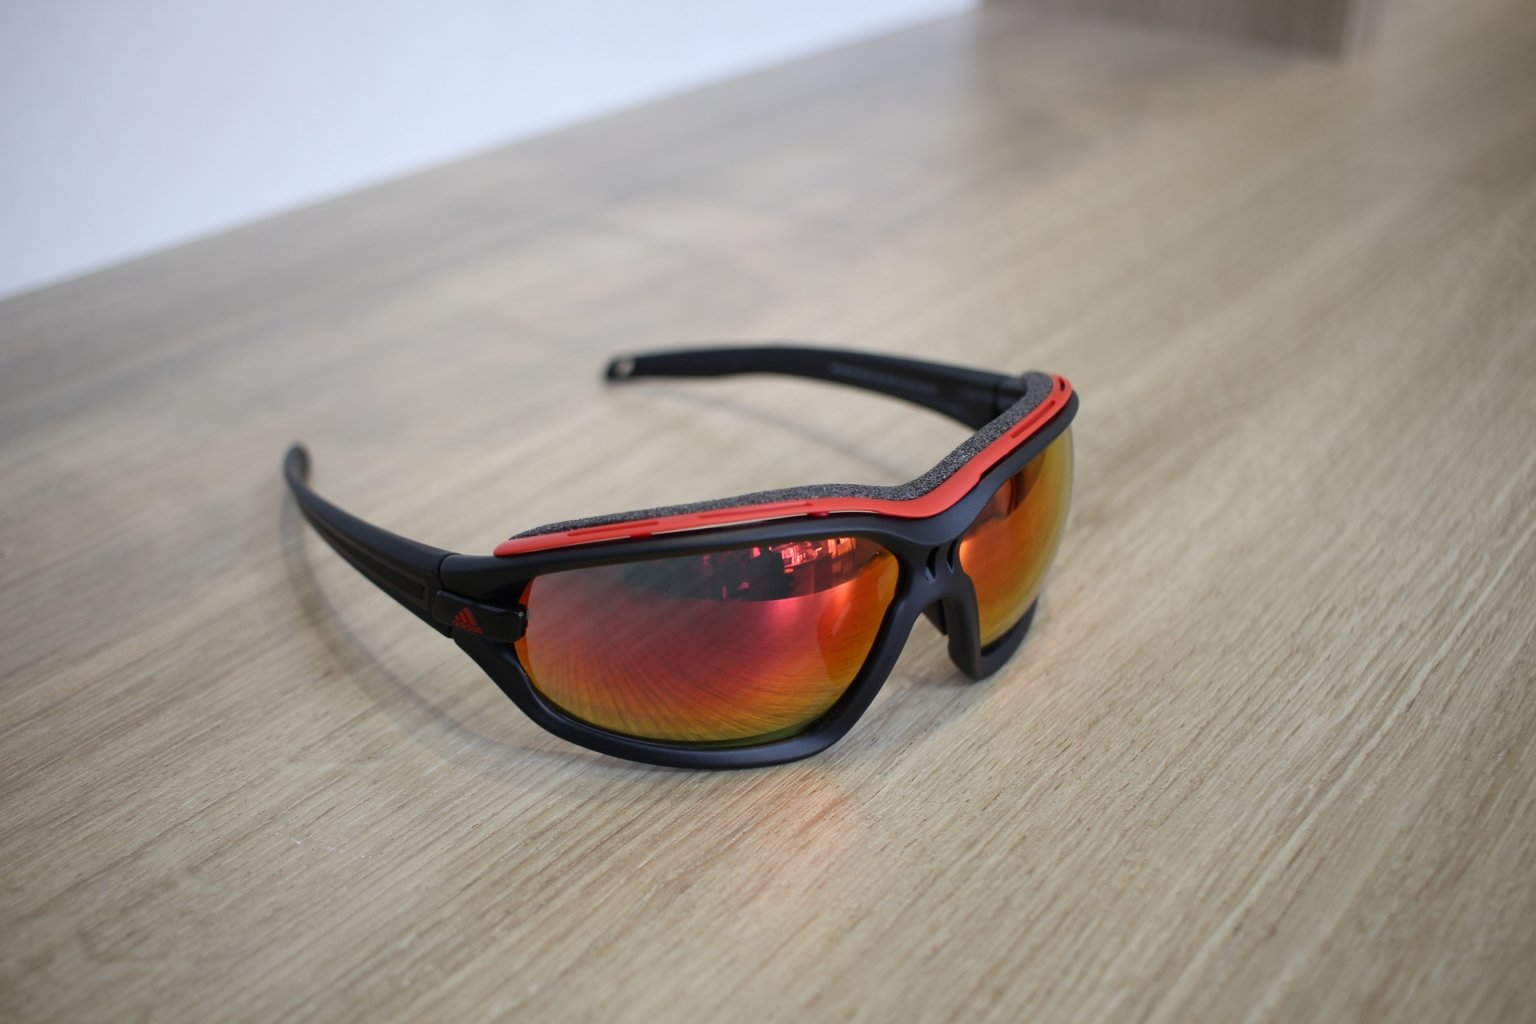 Sharpen your vision with corrective lenses | bike components